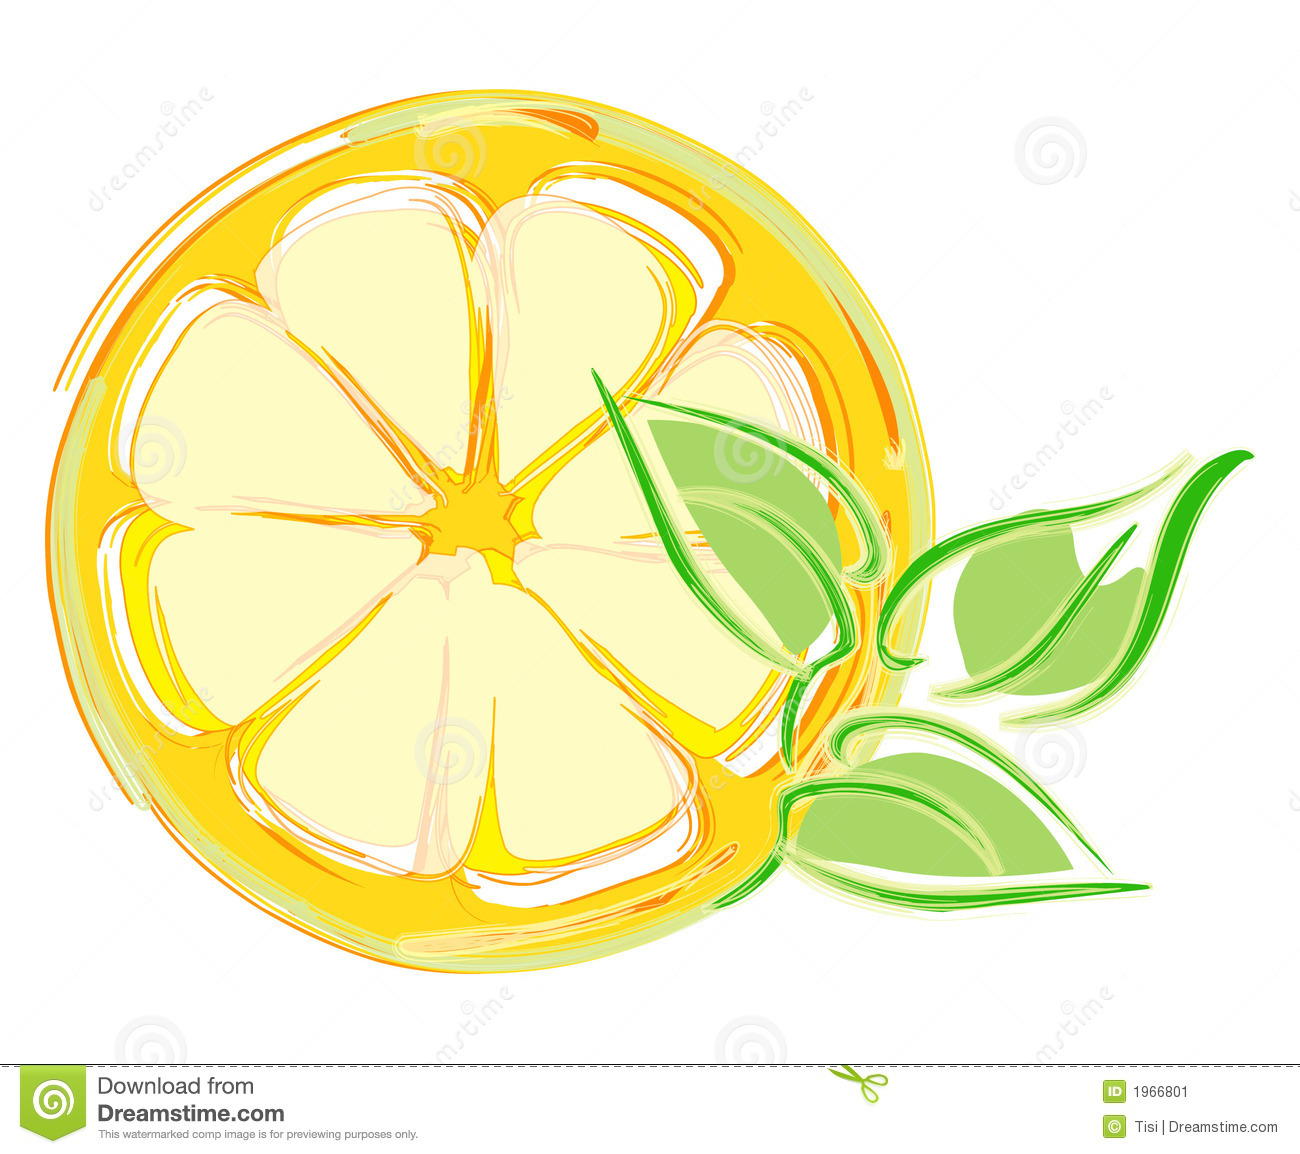 Orange Slice Illustration | Clipart Panda - Free Clipart ...